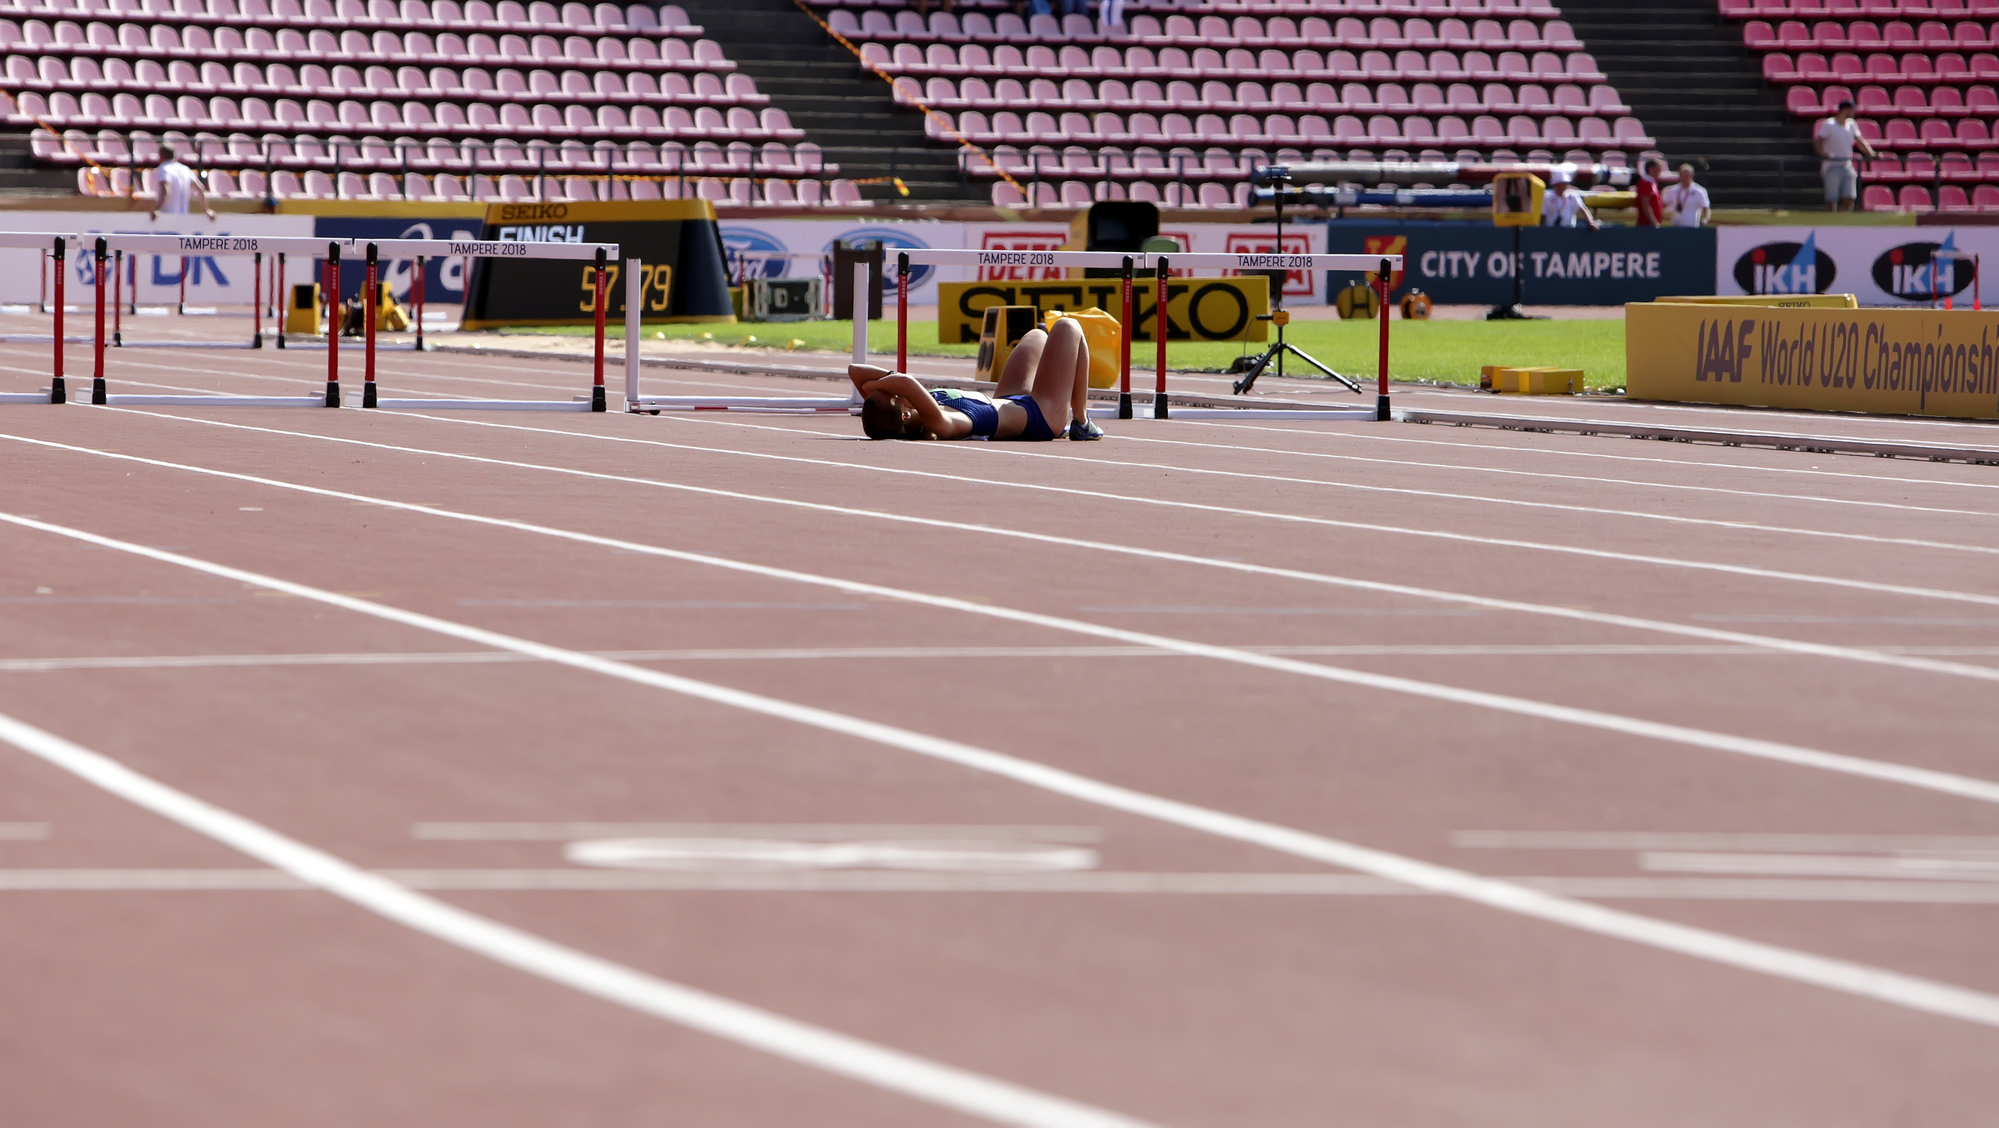 steeple chase athlete laying on track after losing because not good enough